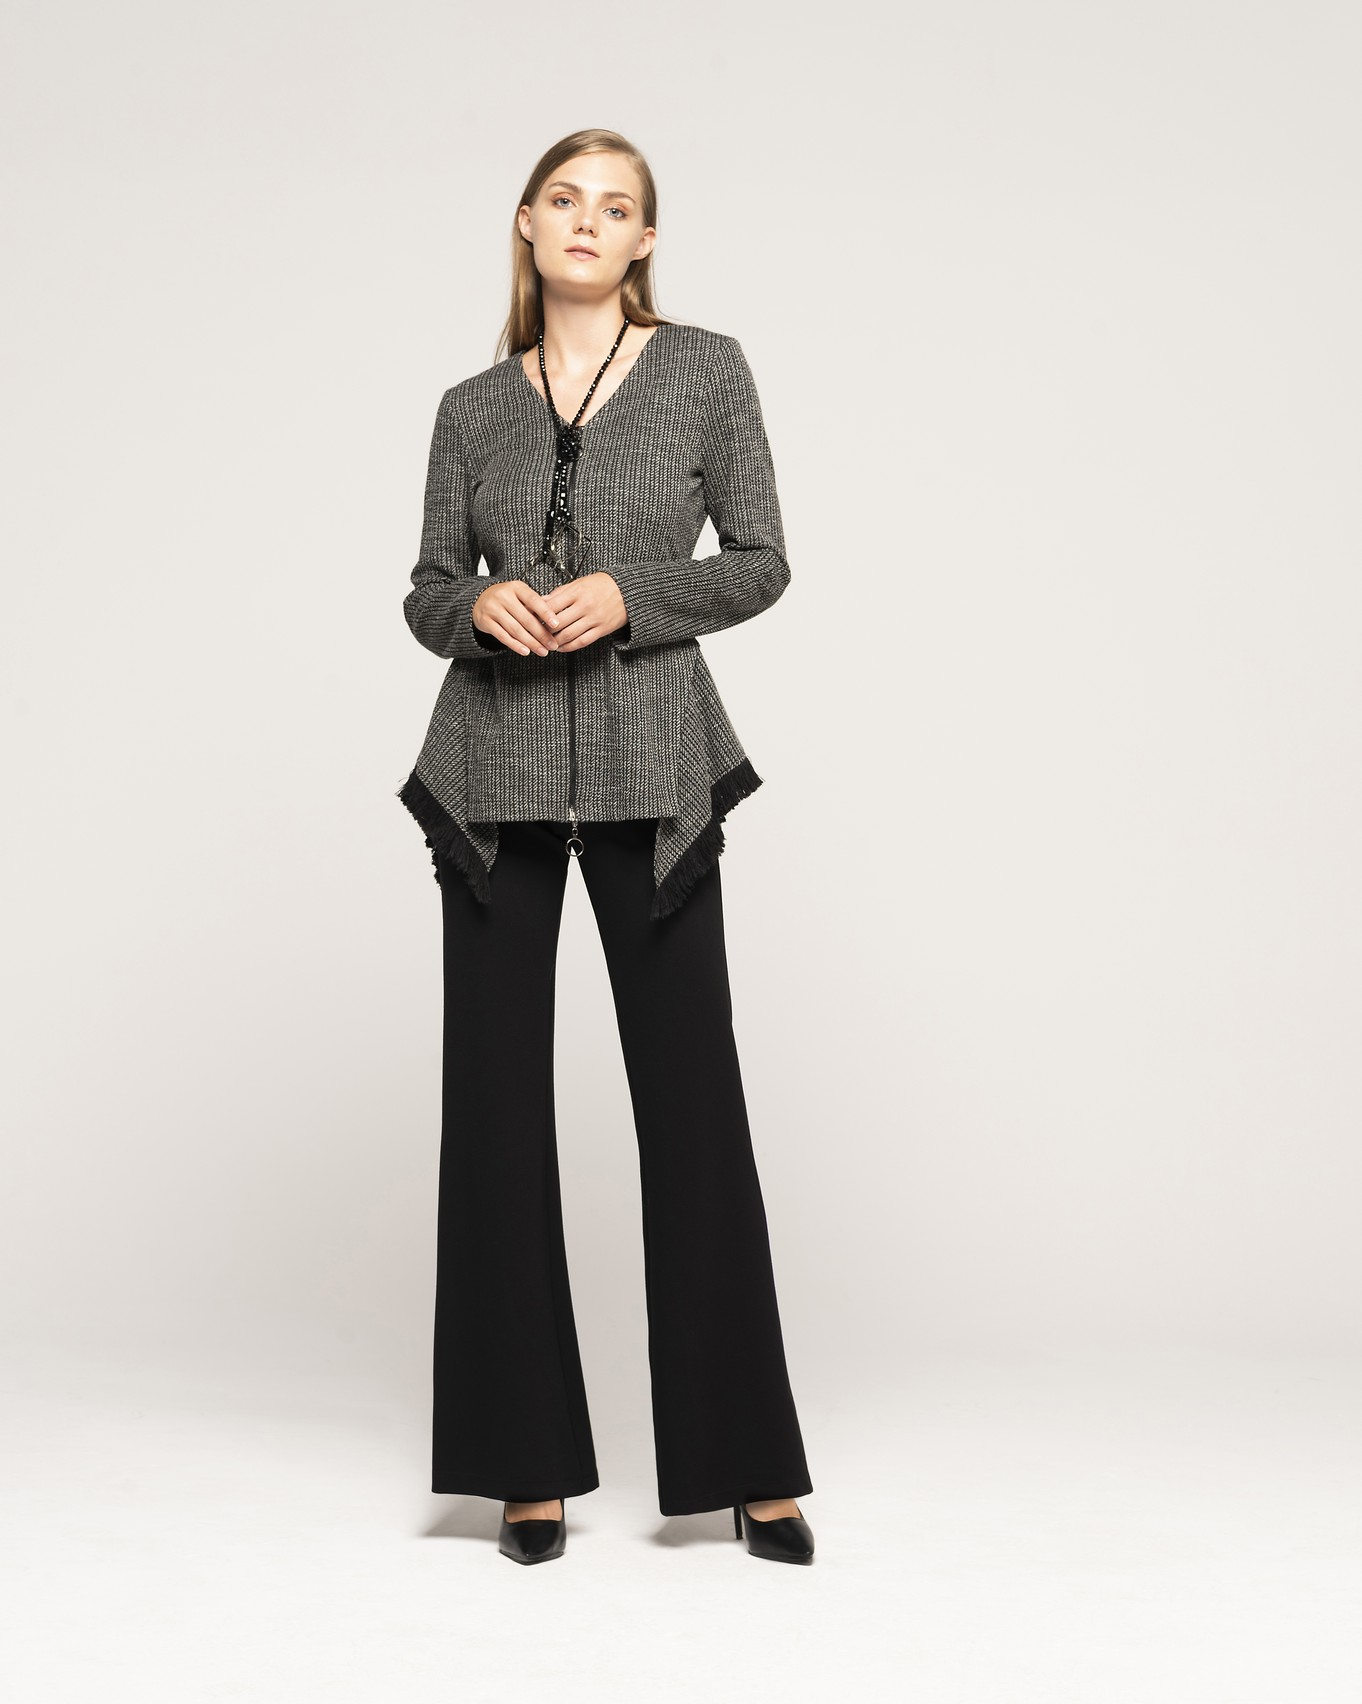 JACKET 604 - TROUSERS 140 - NECKLACE C350.jpg